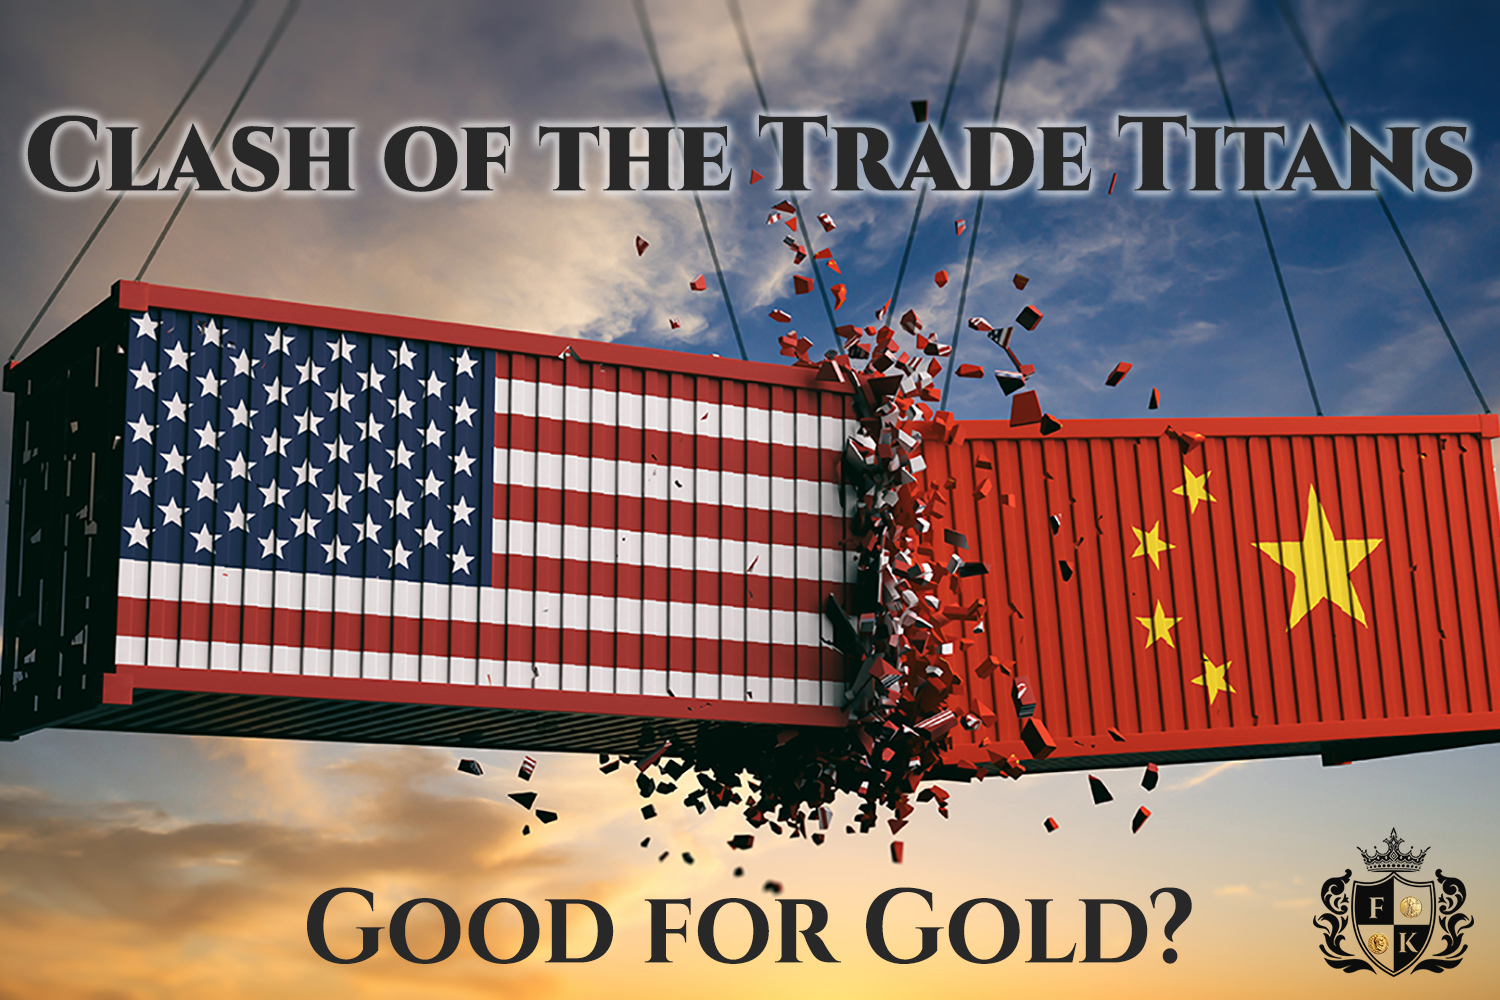 Finest Known Trade Titans Good For Gold